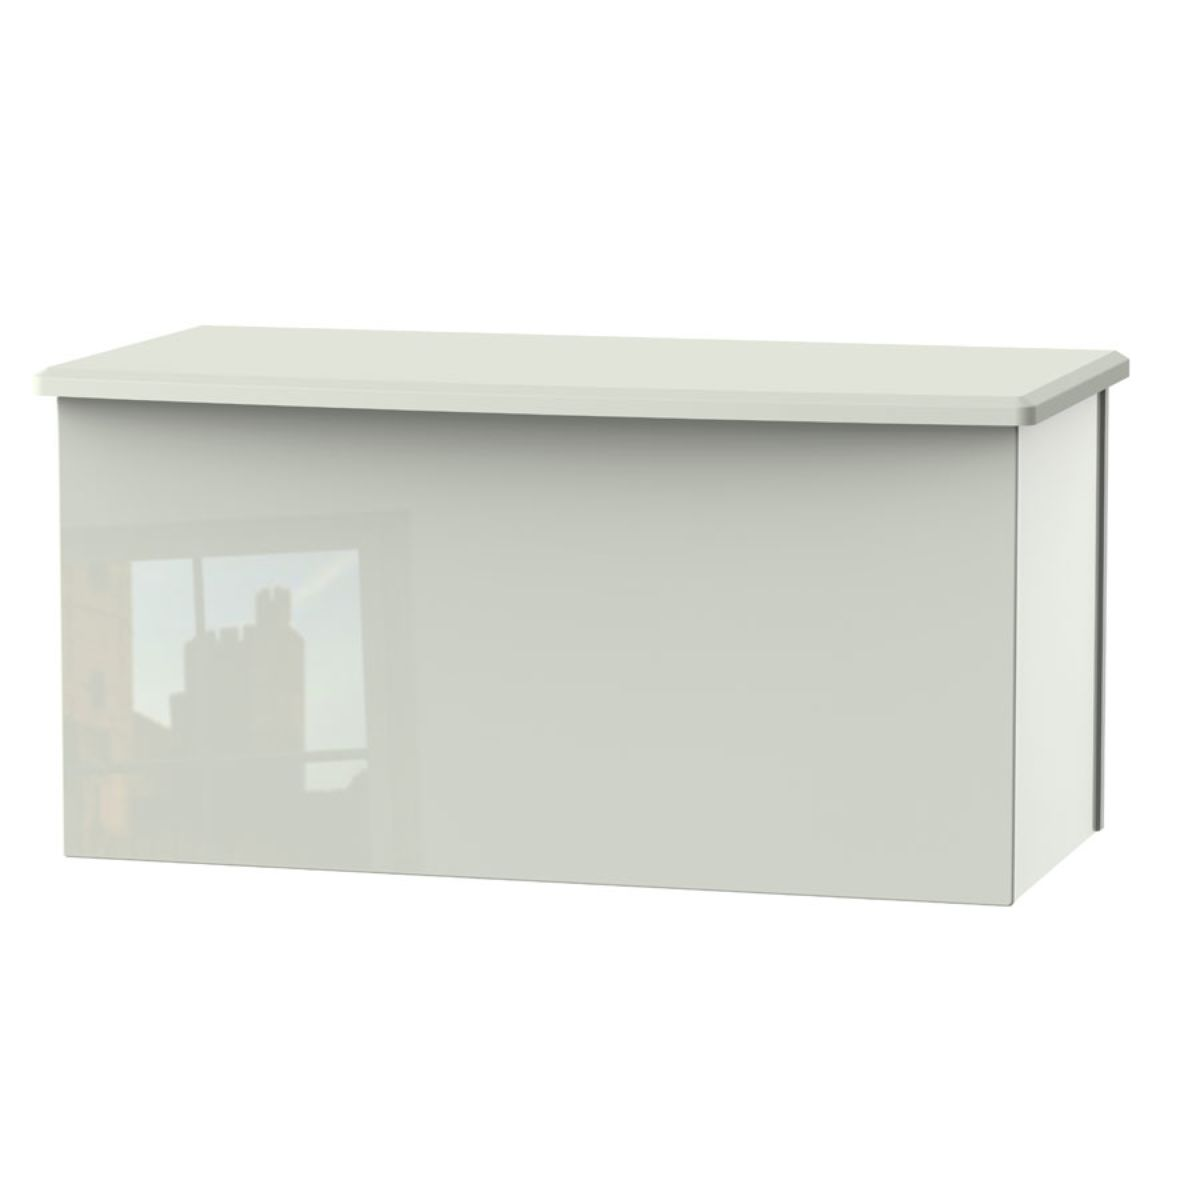 Indices Blanket Box - White/Grey